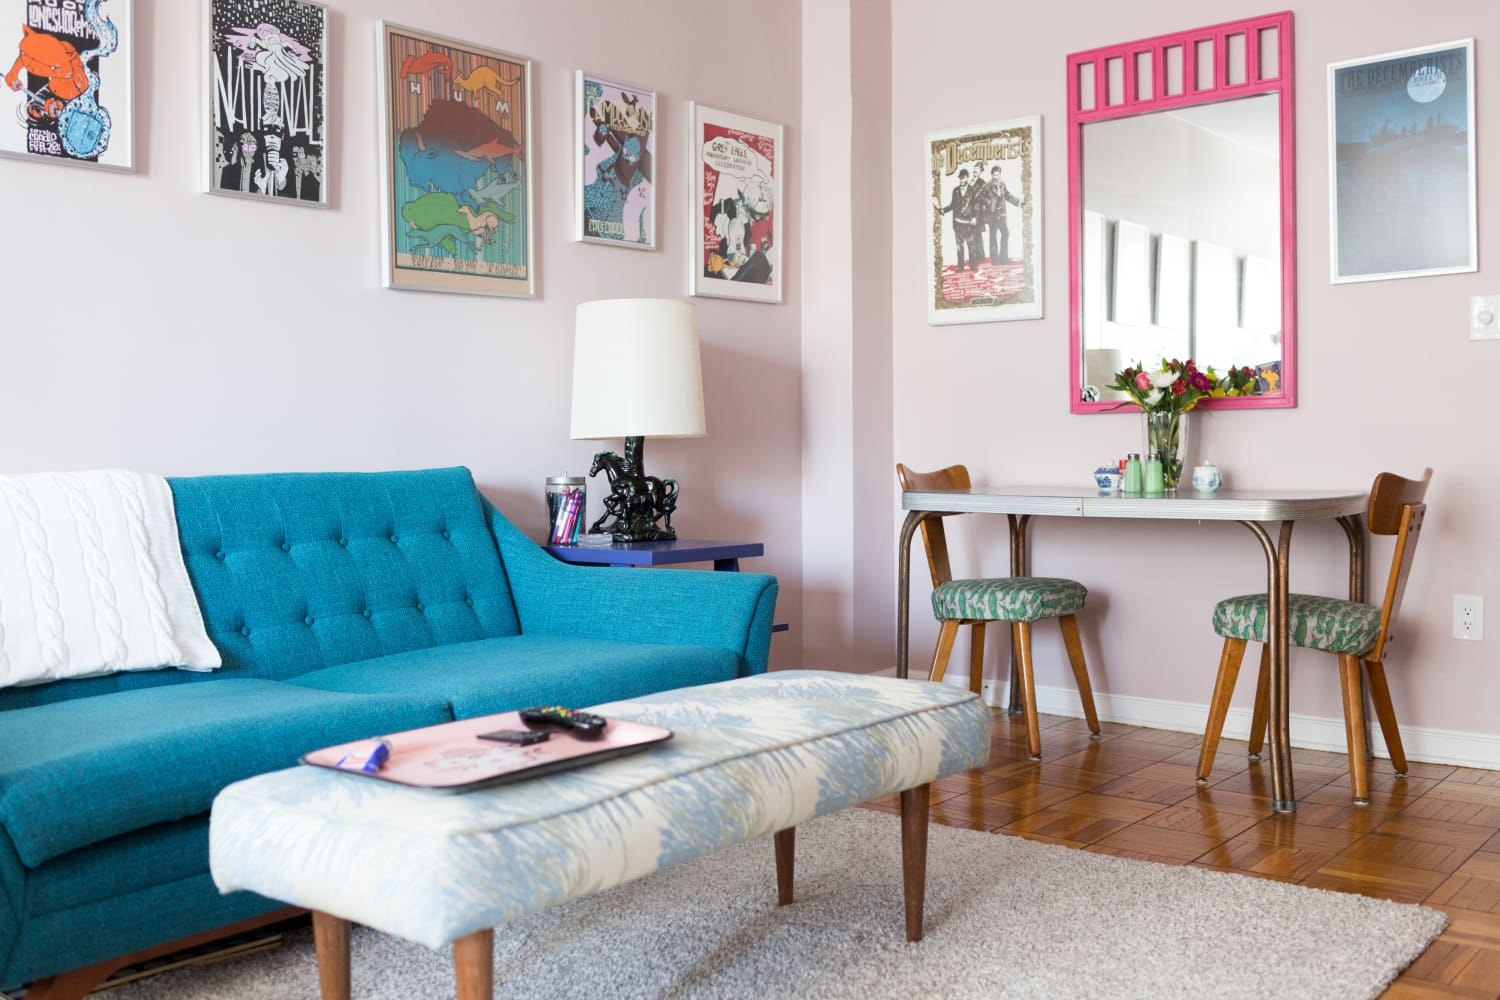 17 (Basically) Free Makeovers to Do at Home with Stuff You Already Have